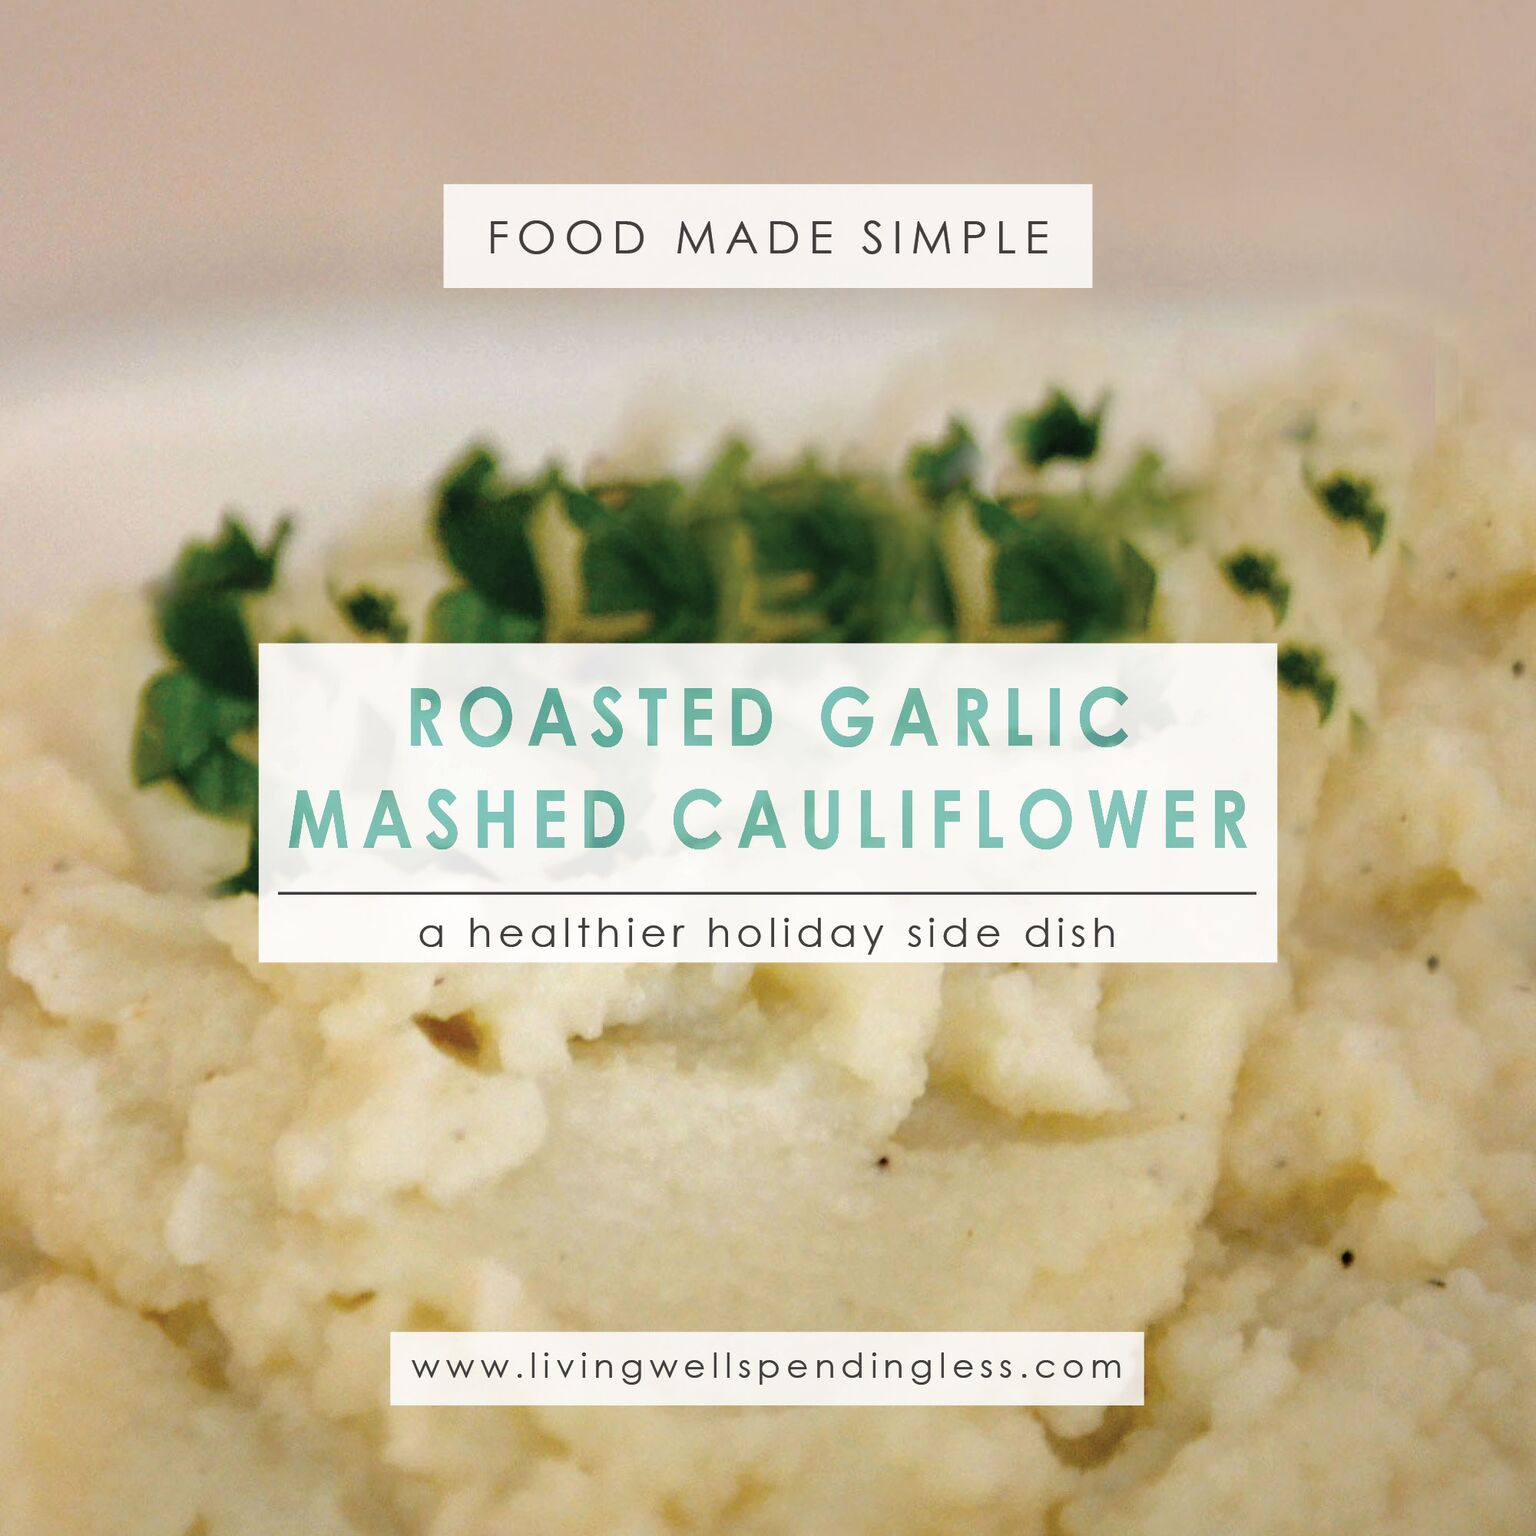 Roasted Garlic Mashed Cauliflower | Mashed Cauliflower | Roasted Garlic Mashed Cauliflower Recipe | Easy Roasted Garlic Mashed Cauliflower | Best Roasted Garlic Mashed Cauliflower